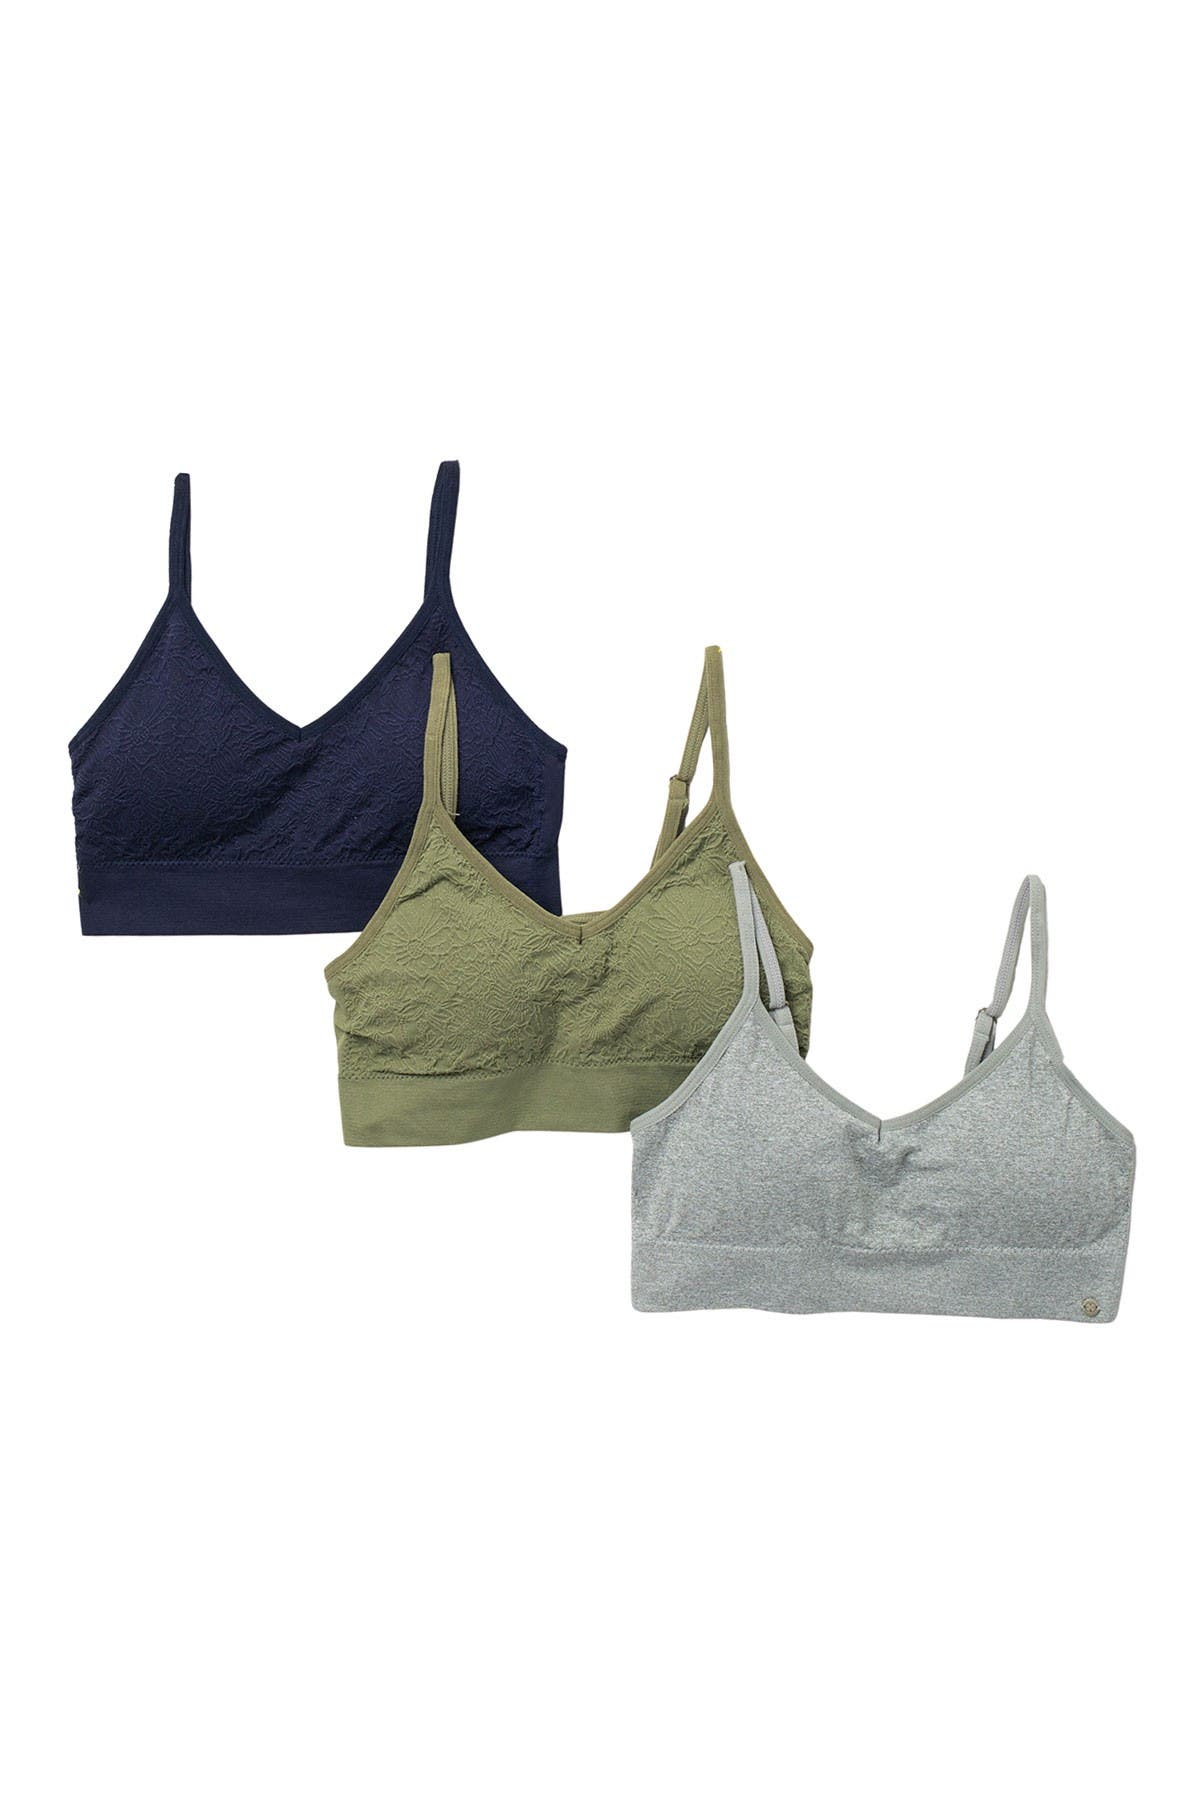 Image of Lucky Brand Seamless V-Neck Bralette - Pack of 3